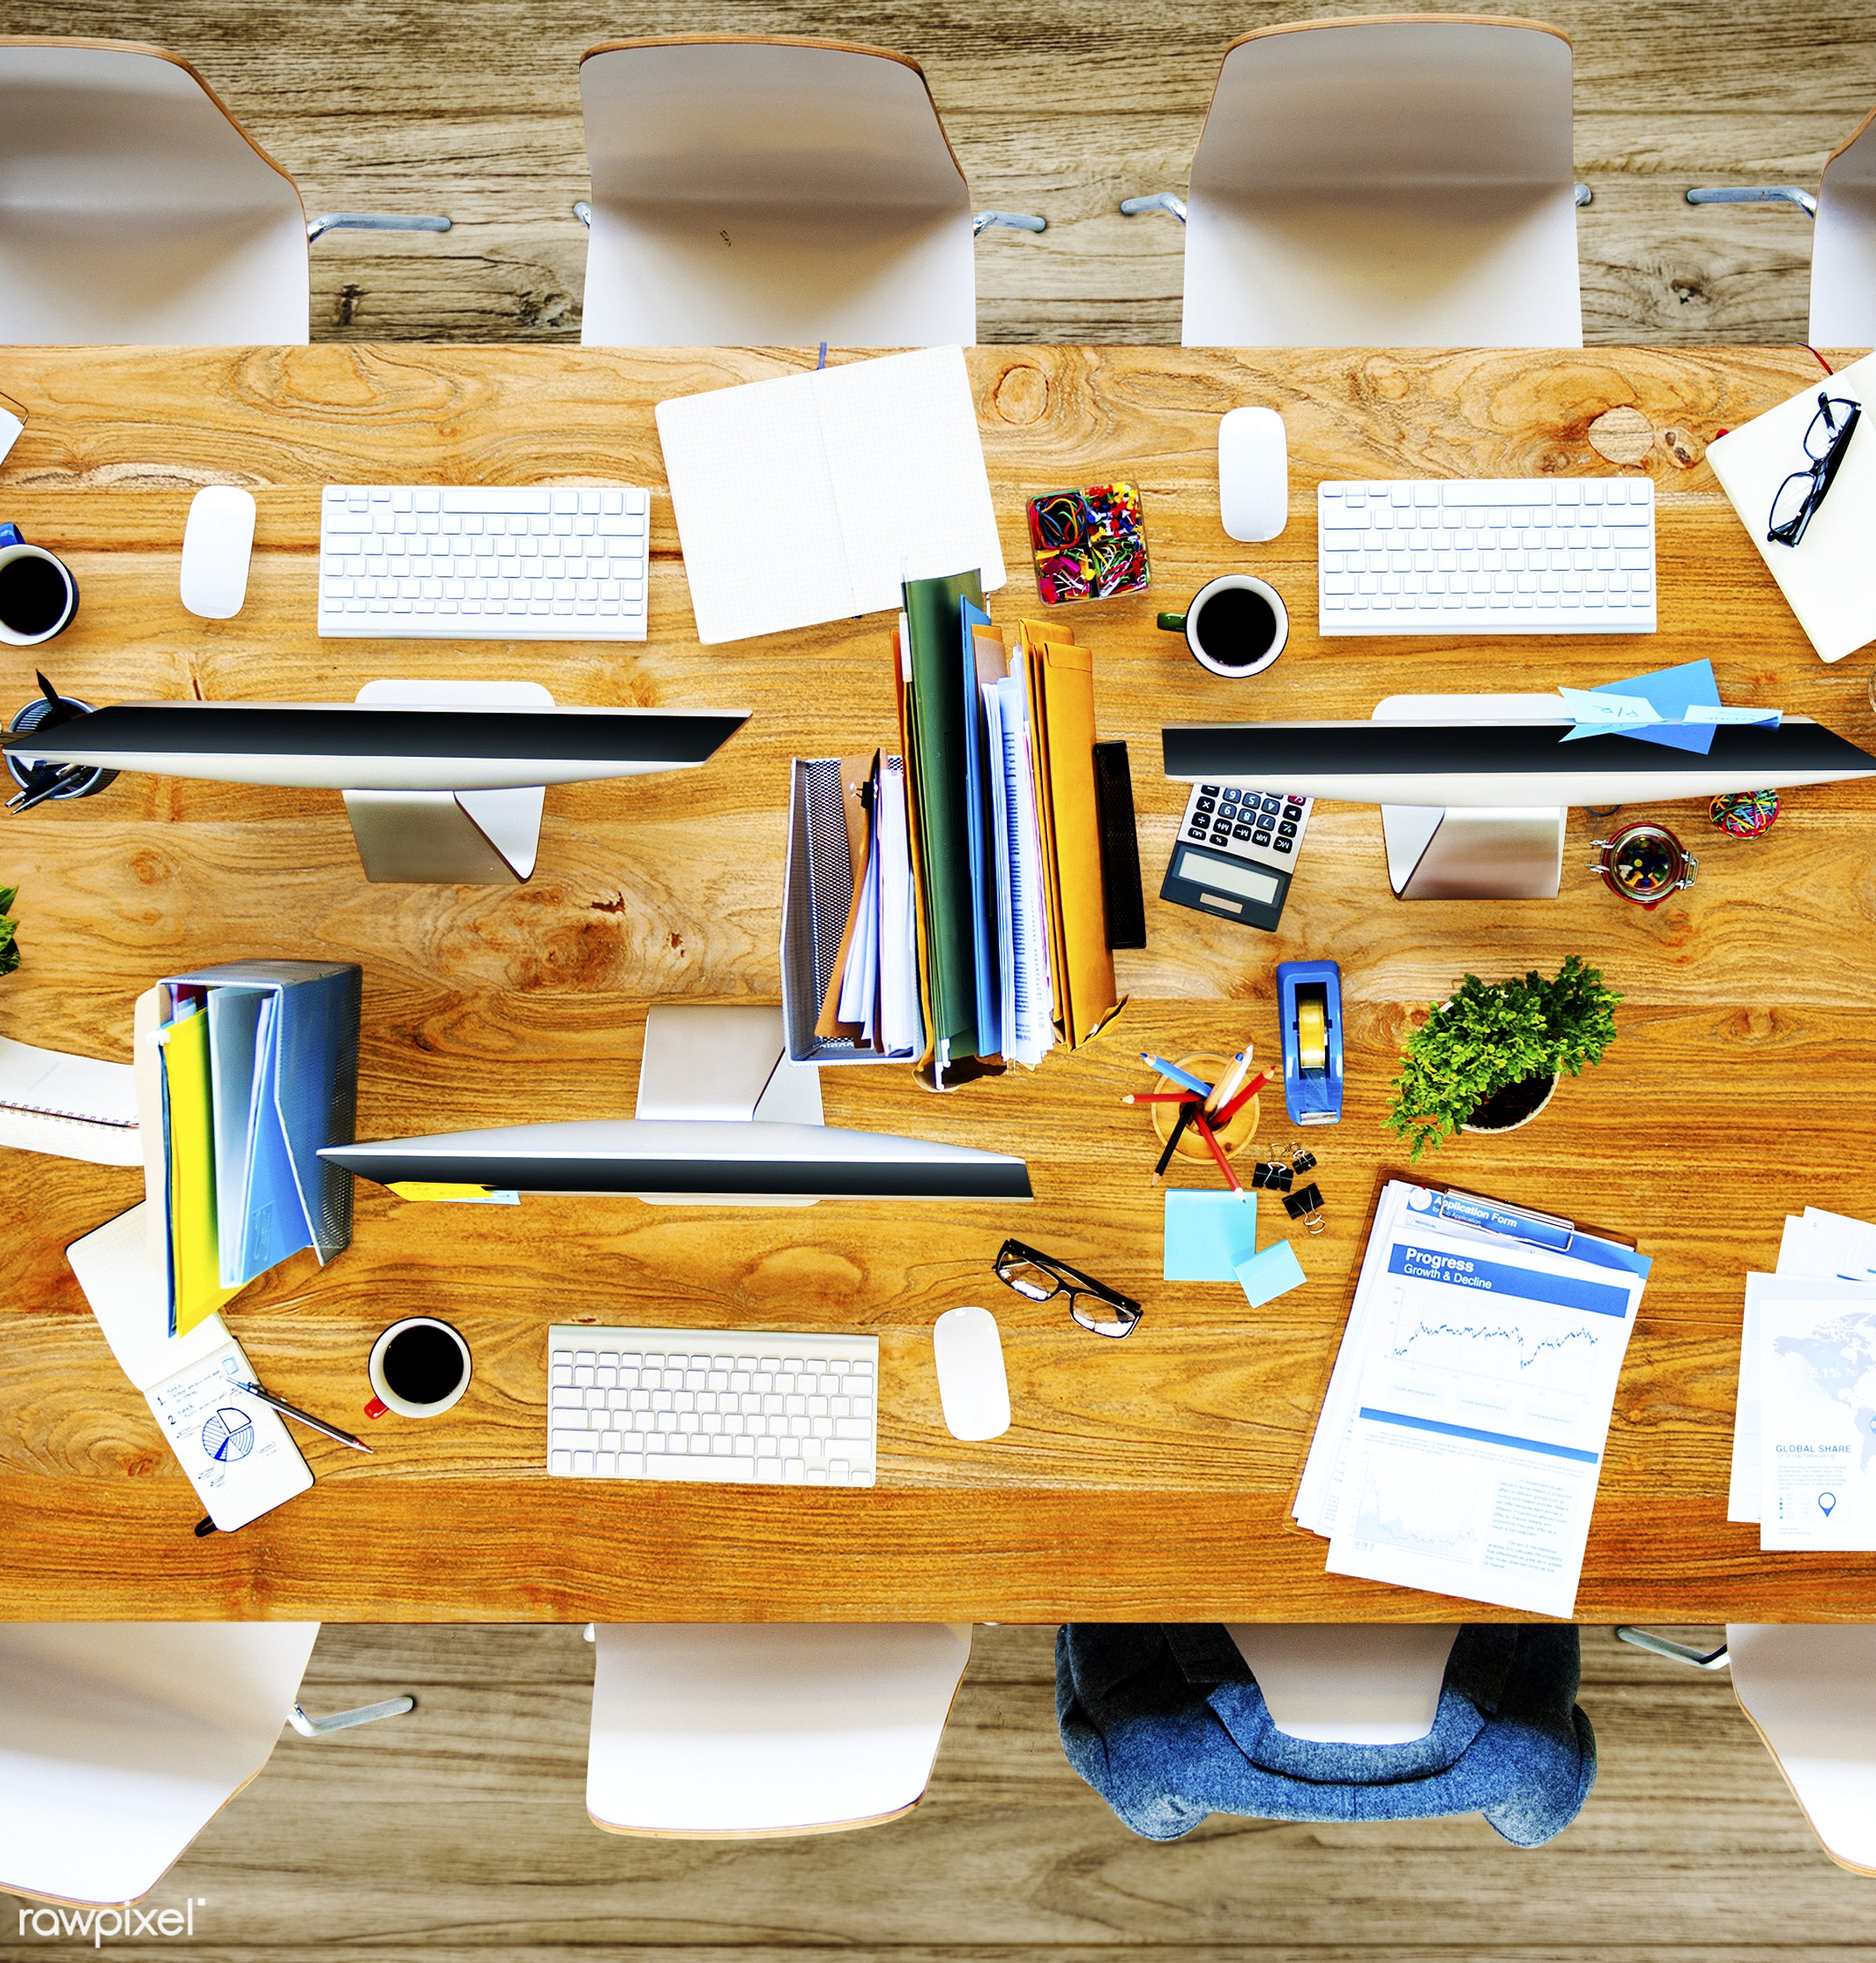 contemporary, analysis, business, casual, chair, chart, coffee break, communication, computer, conference table, connection...